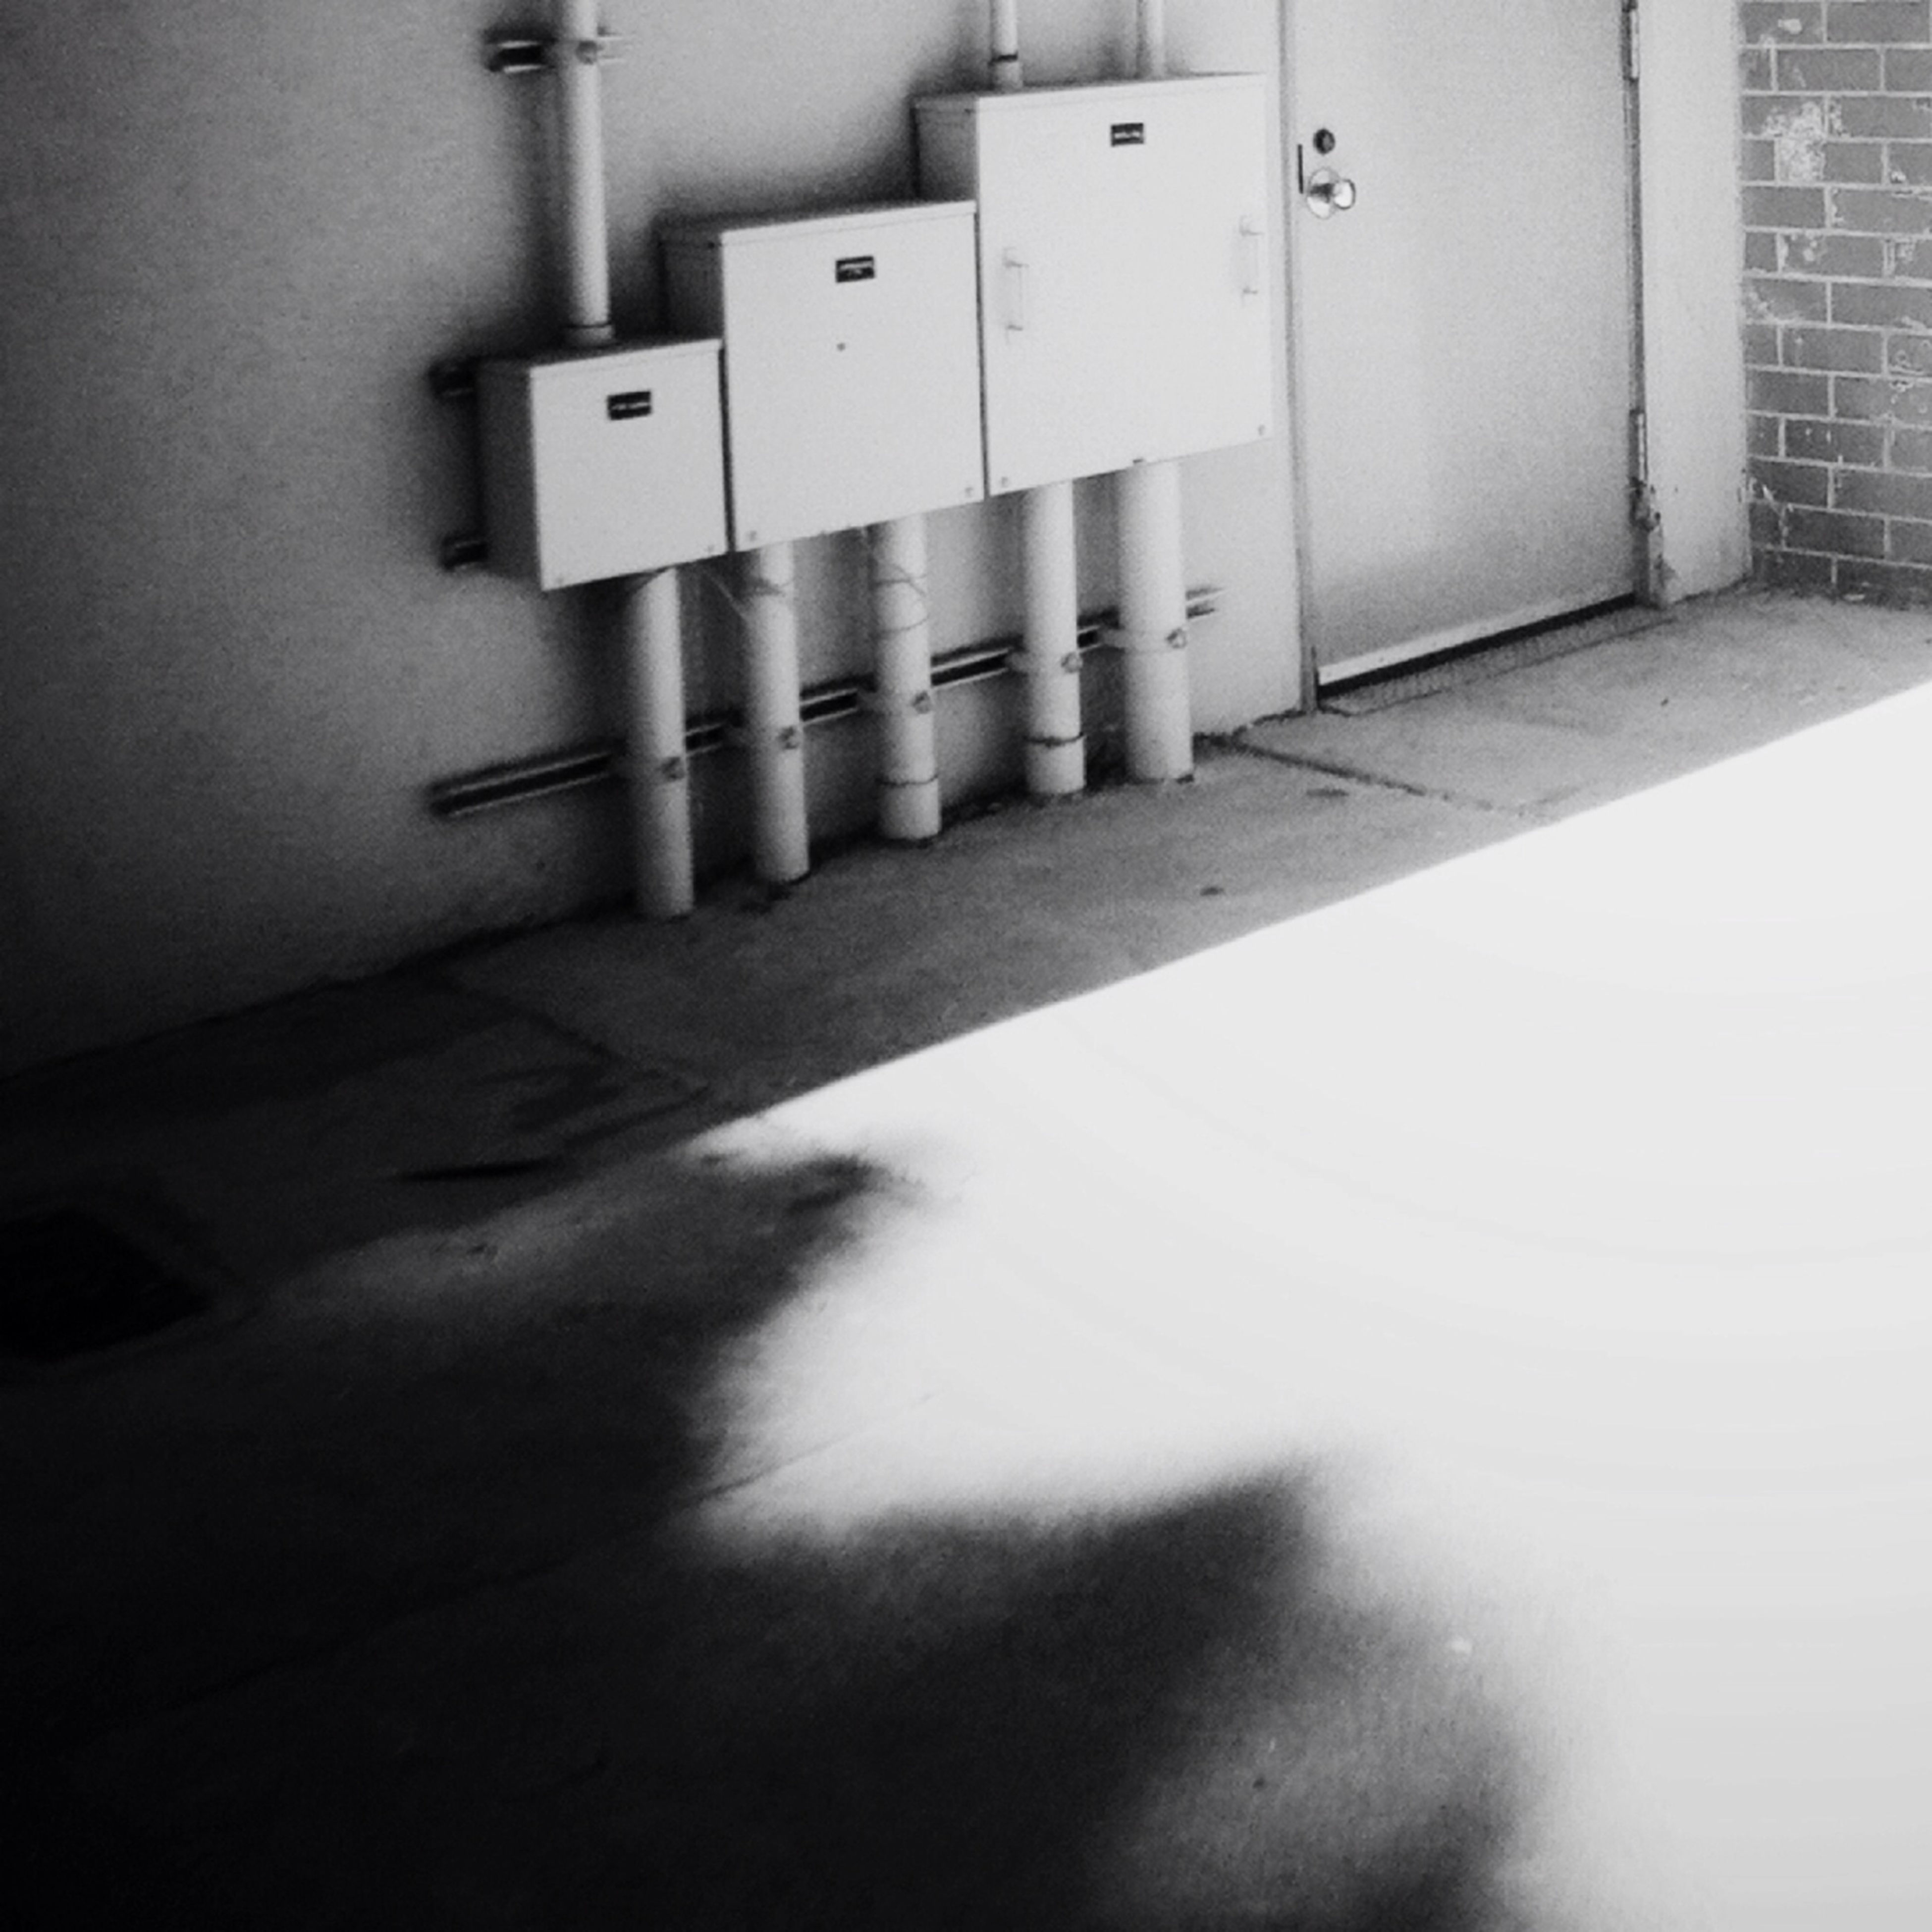 indoors, architecture, built structure, wall - building feature, no people, in a row, wall, shadow, close-up, illuminated, building, door, building exterior, the way forward, white color, high angle view, diminishing perspective, empty, day, pattern